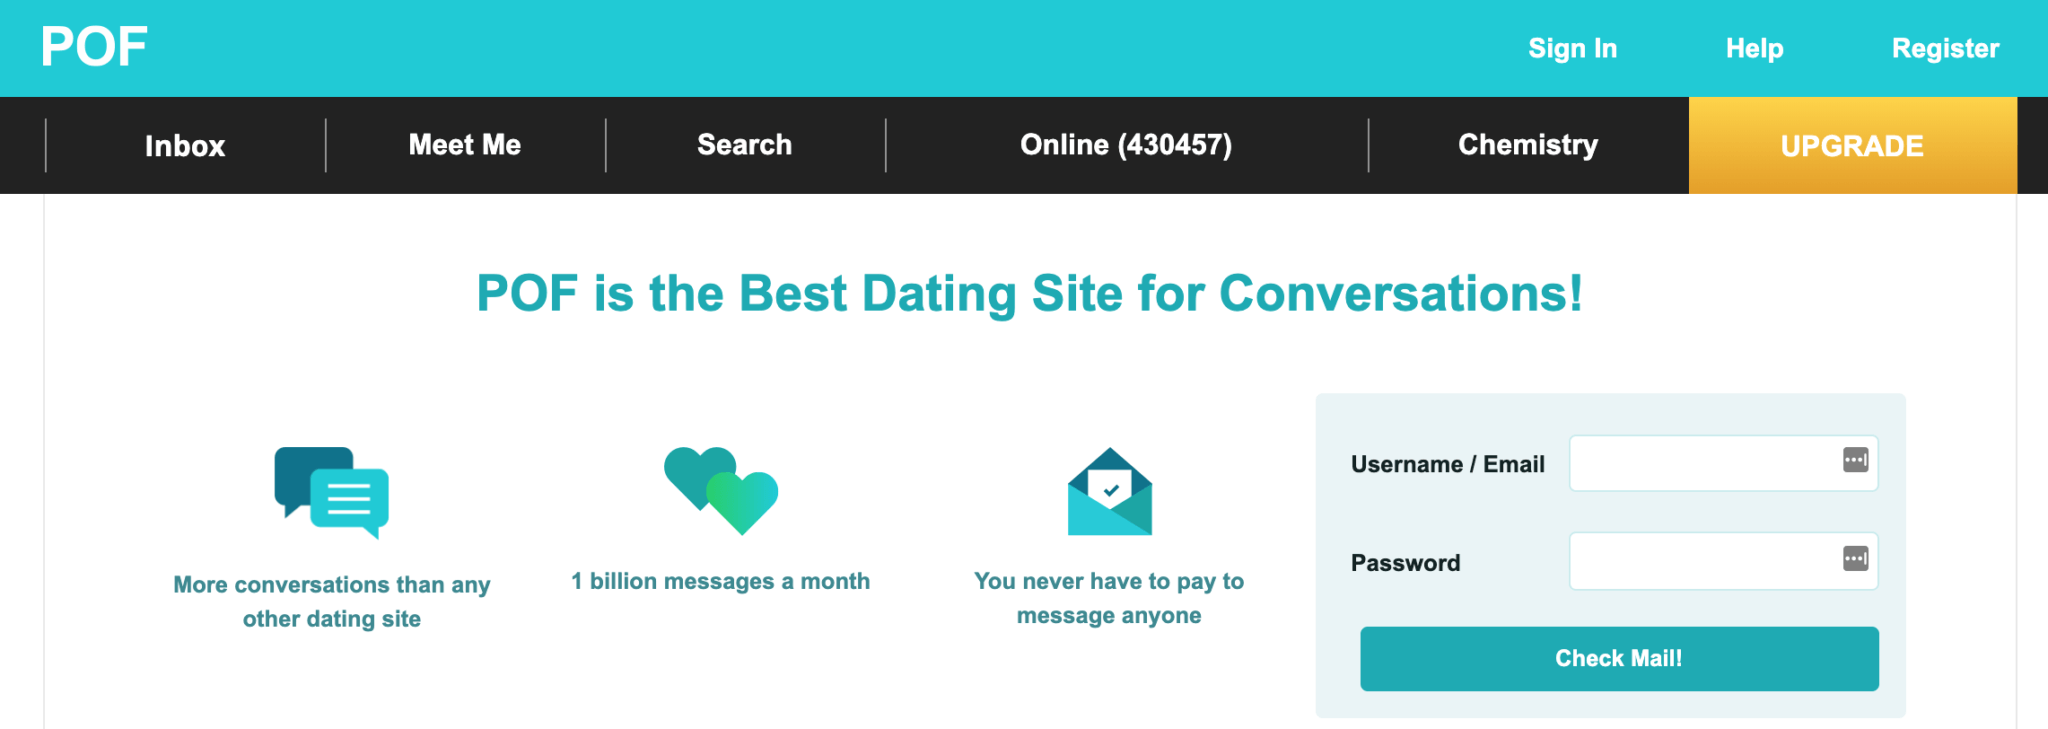 Online dating Australia | POF | Beanstalk Single Mums